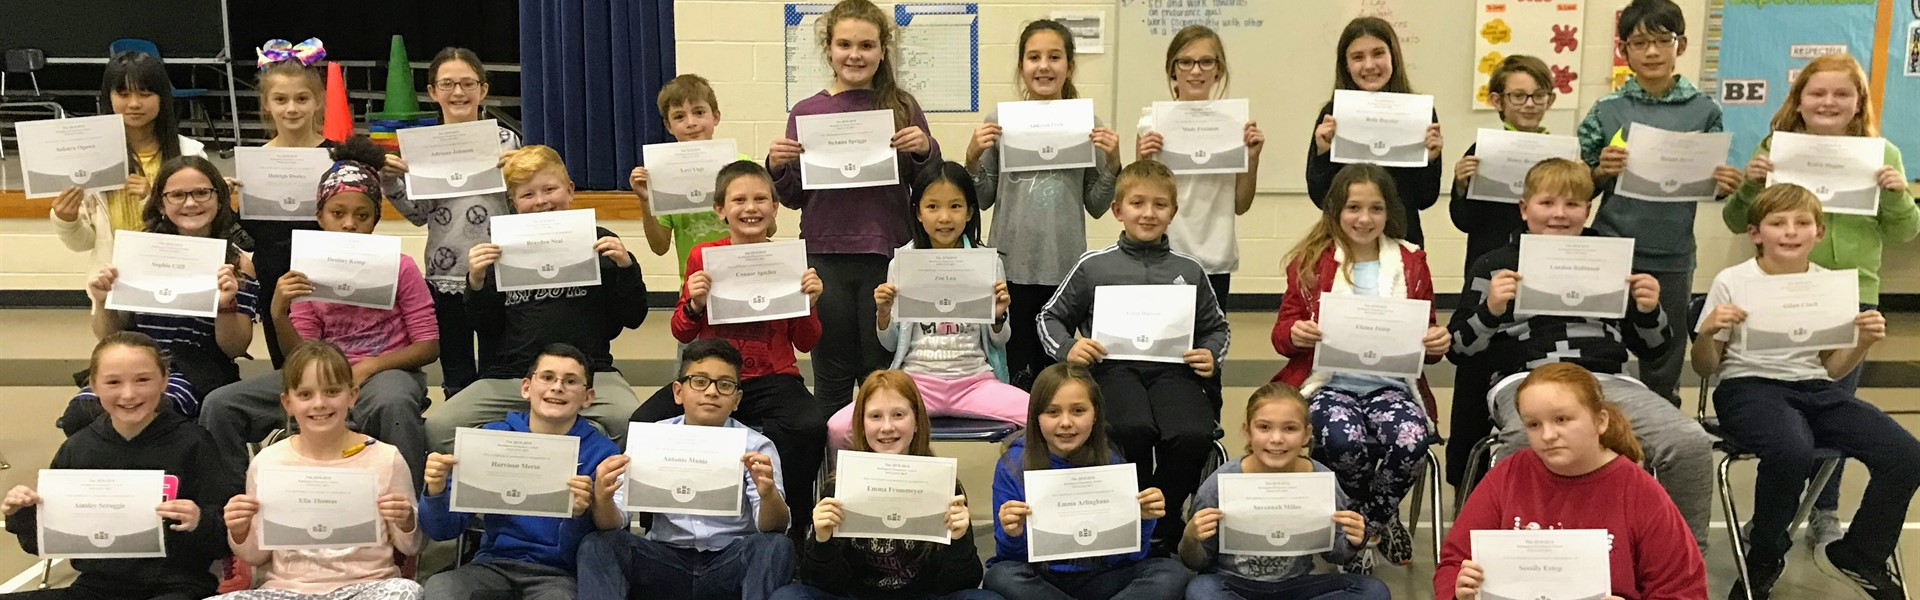 2018 Spelling Bee Participants